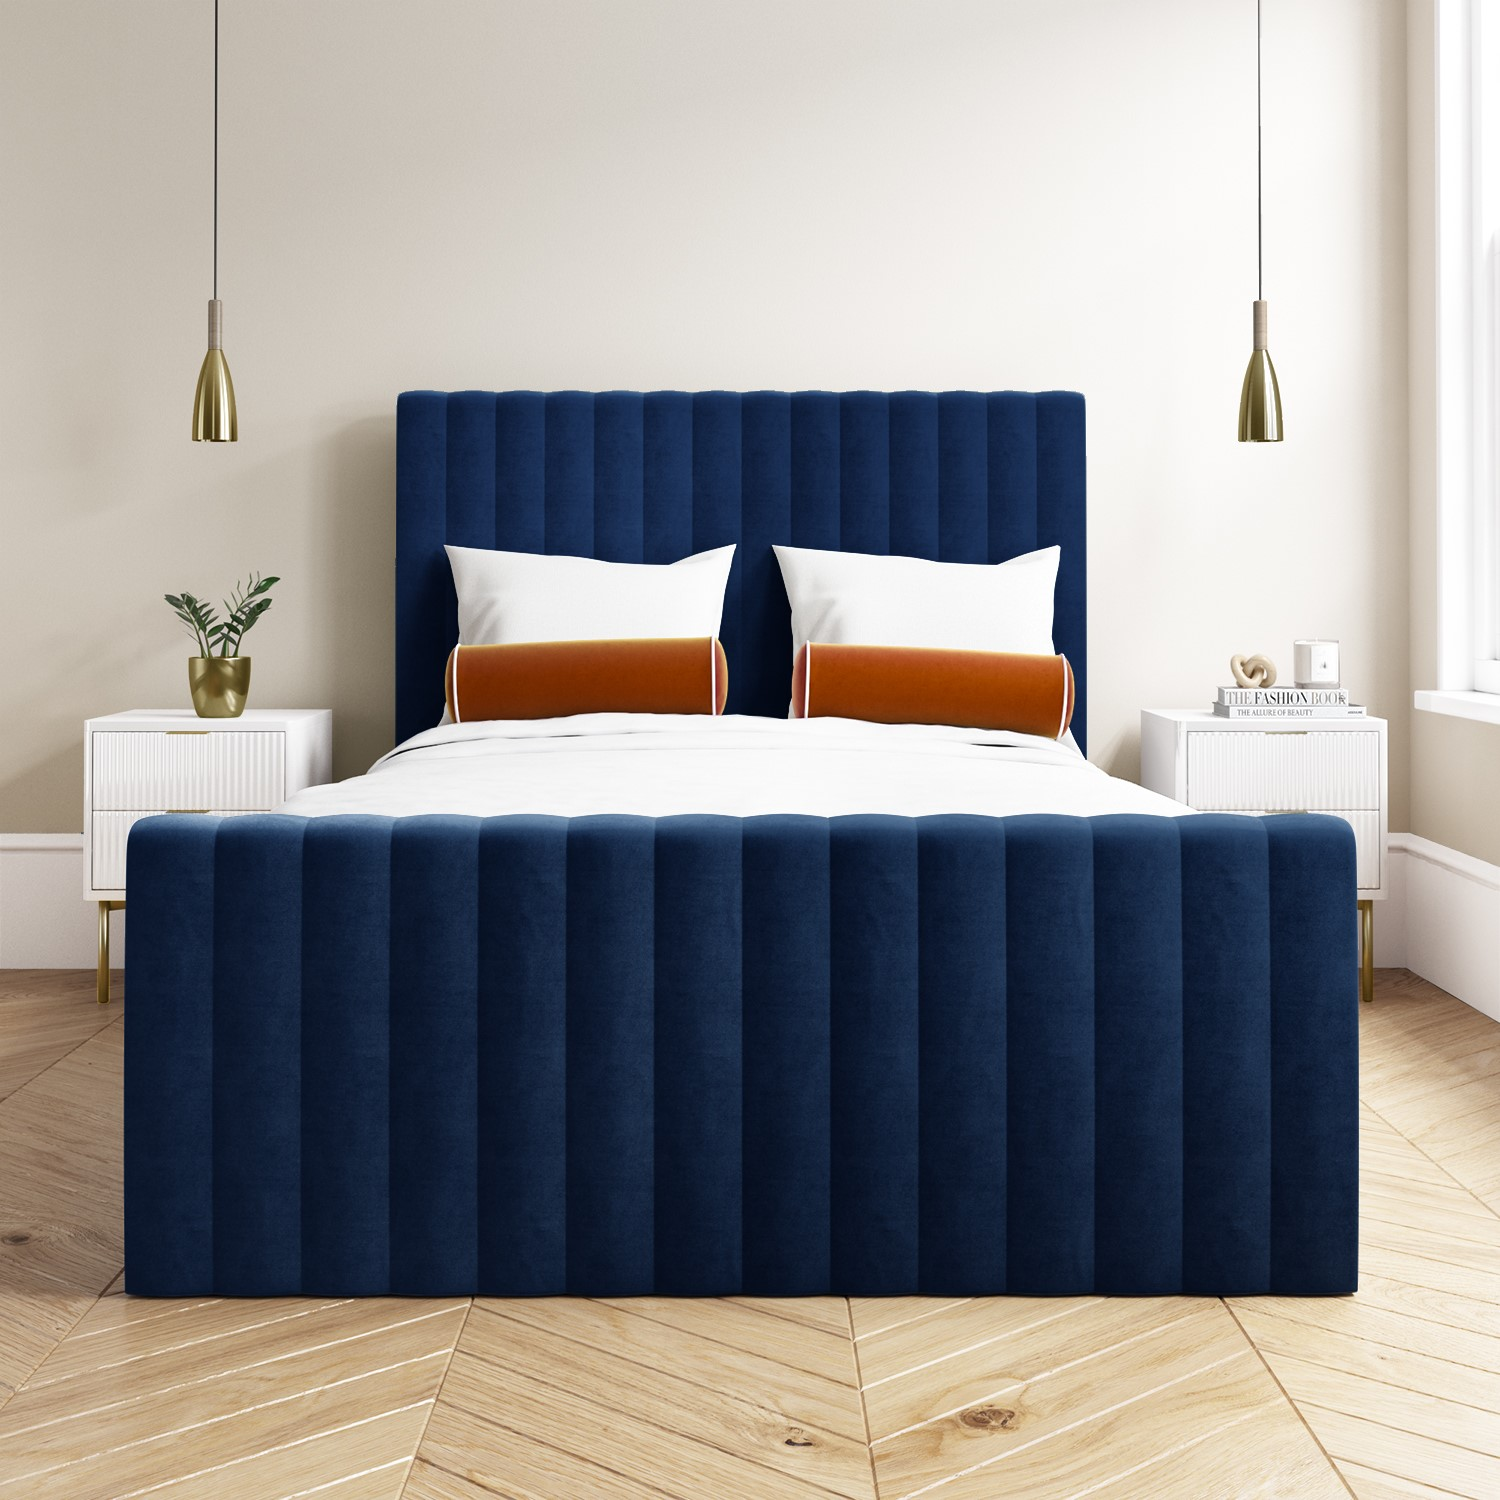 details about double velvet ottoman bed in navy blue side storage